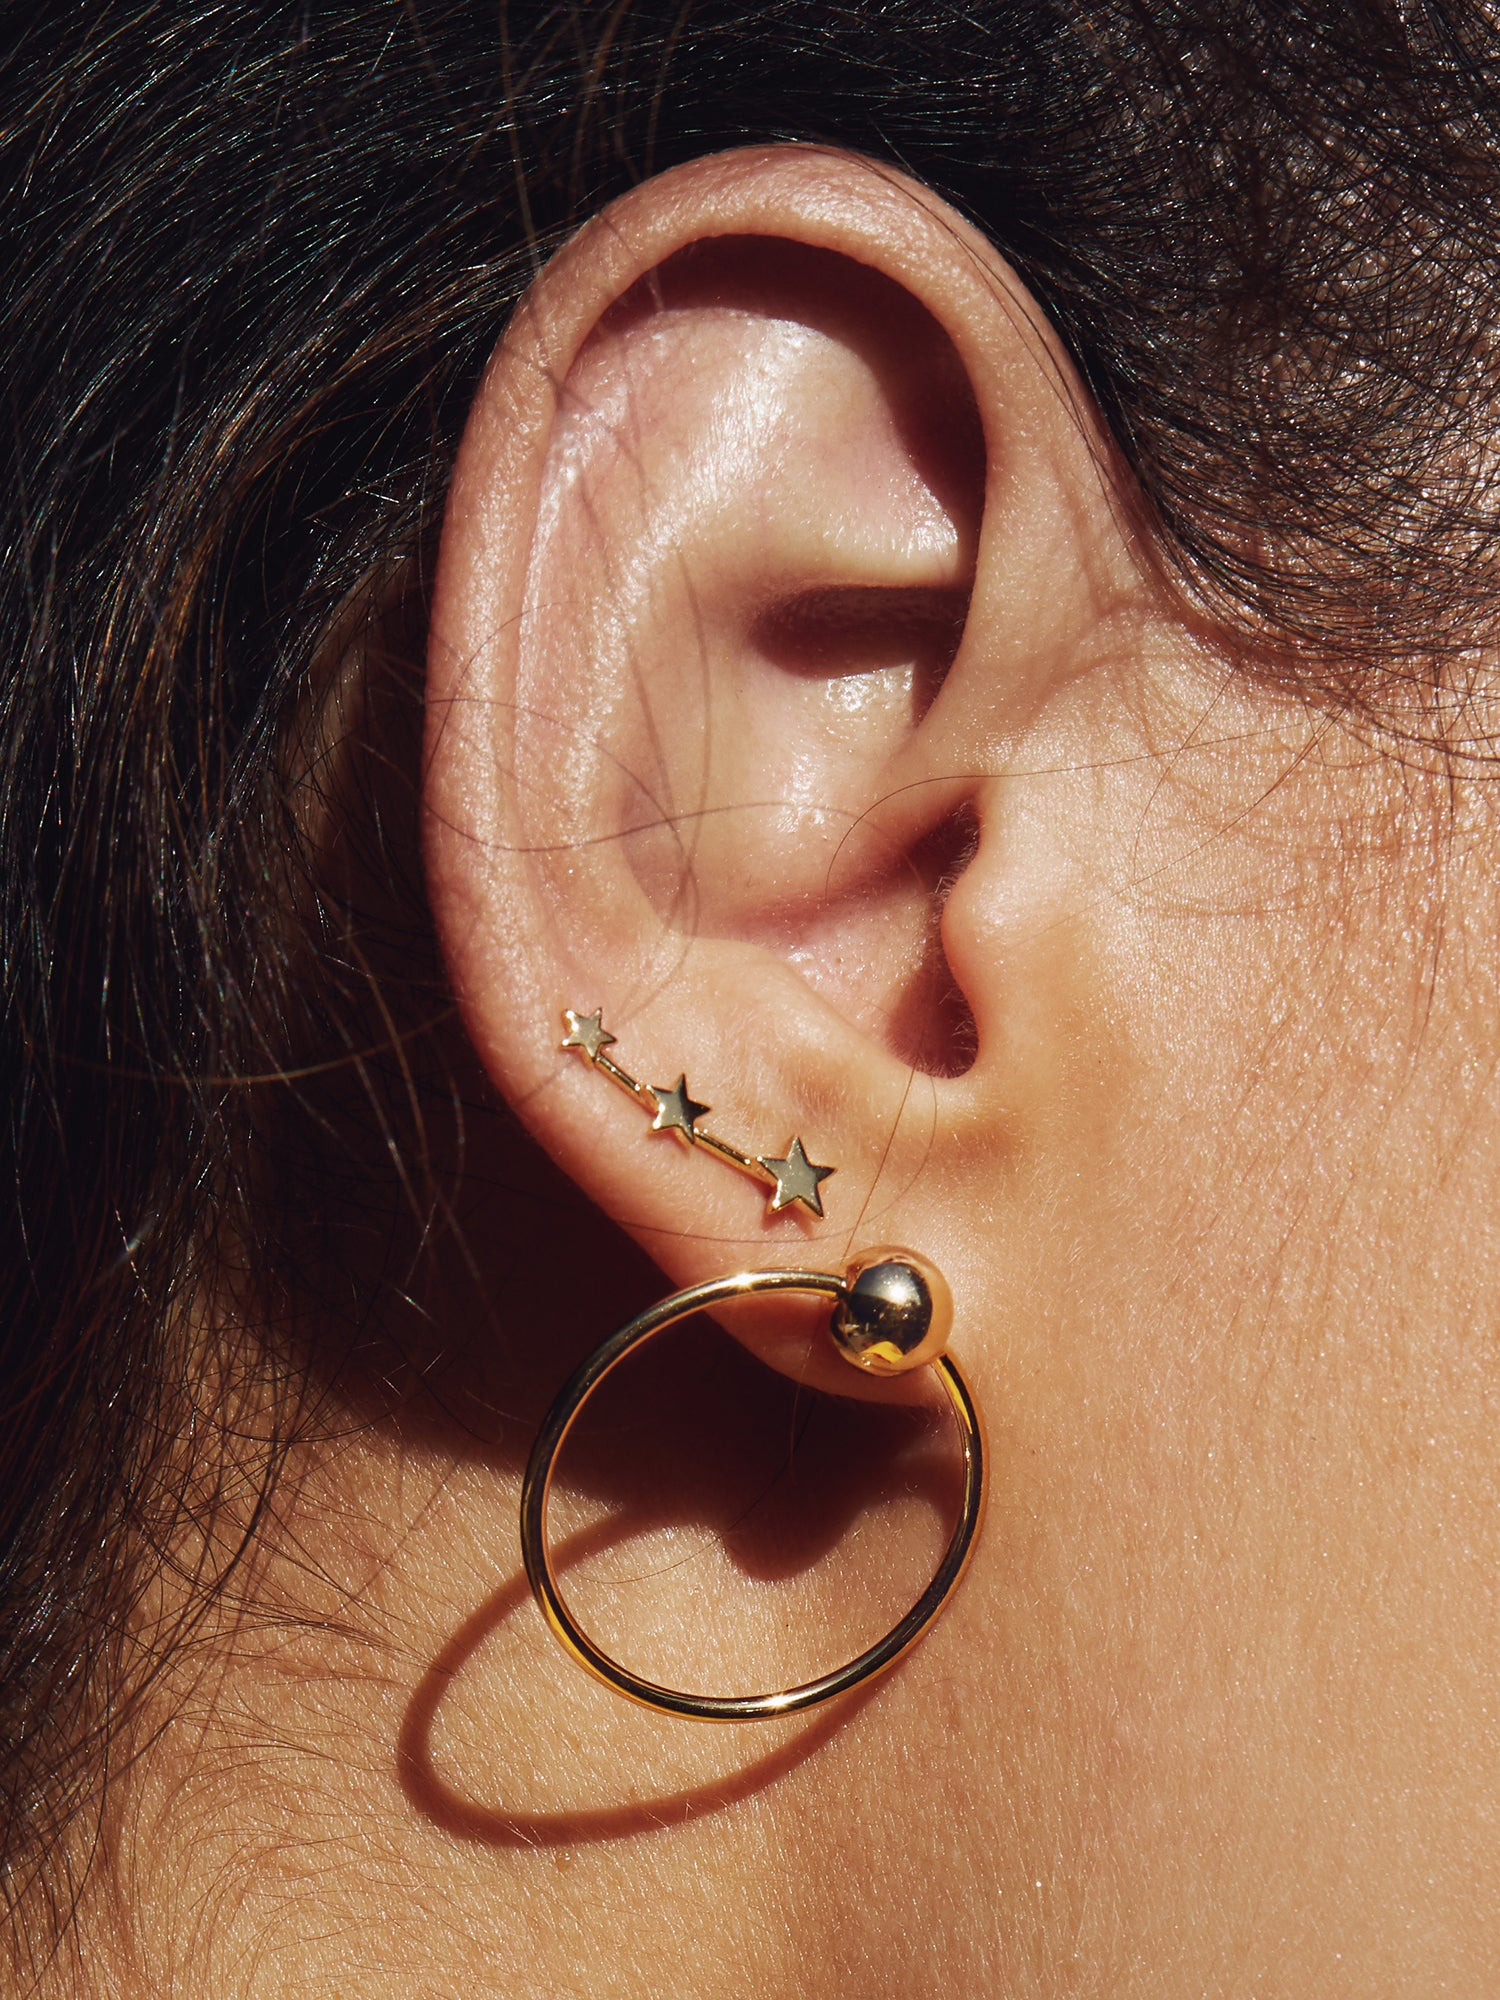 RING OF FIRE HOOP EARRINGS